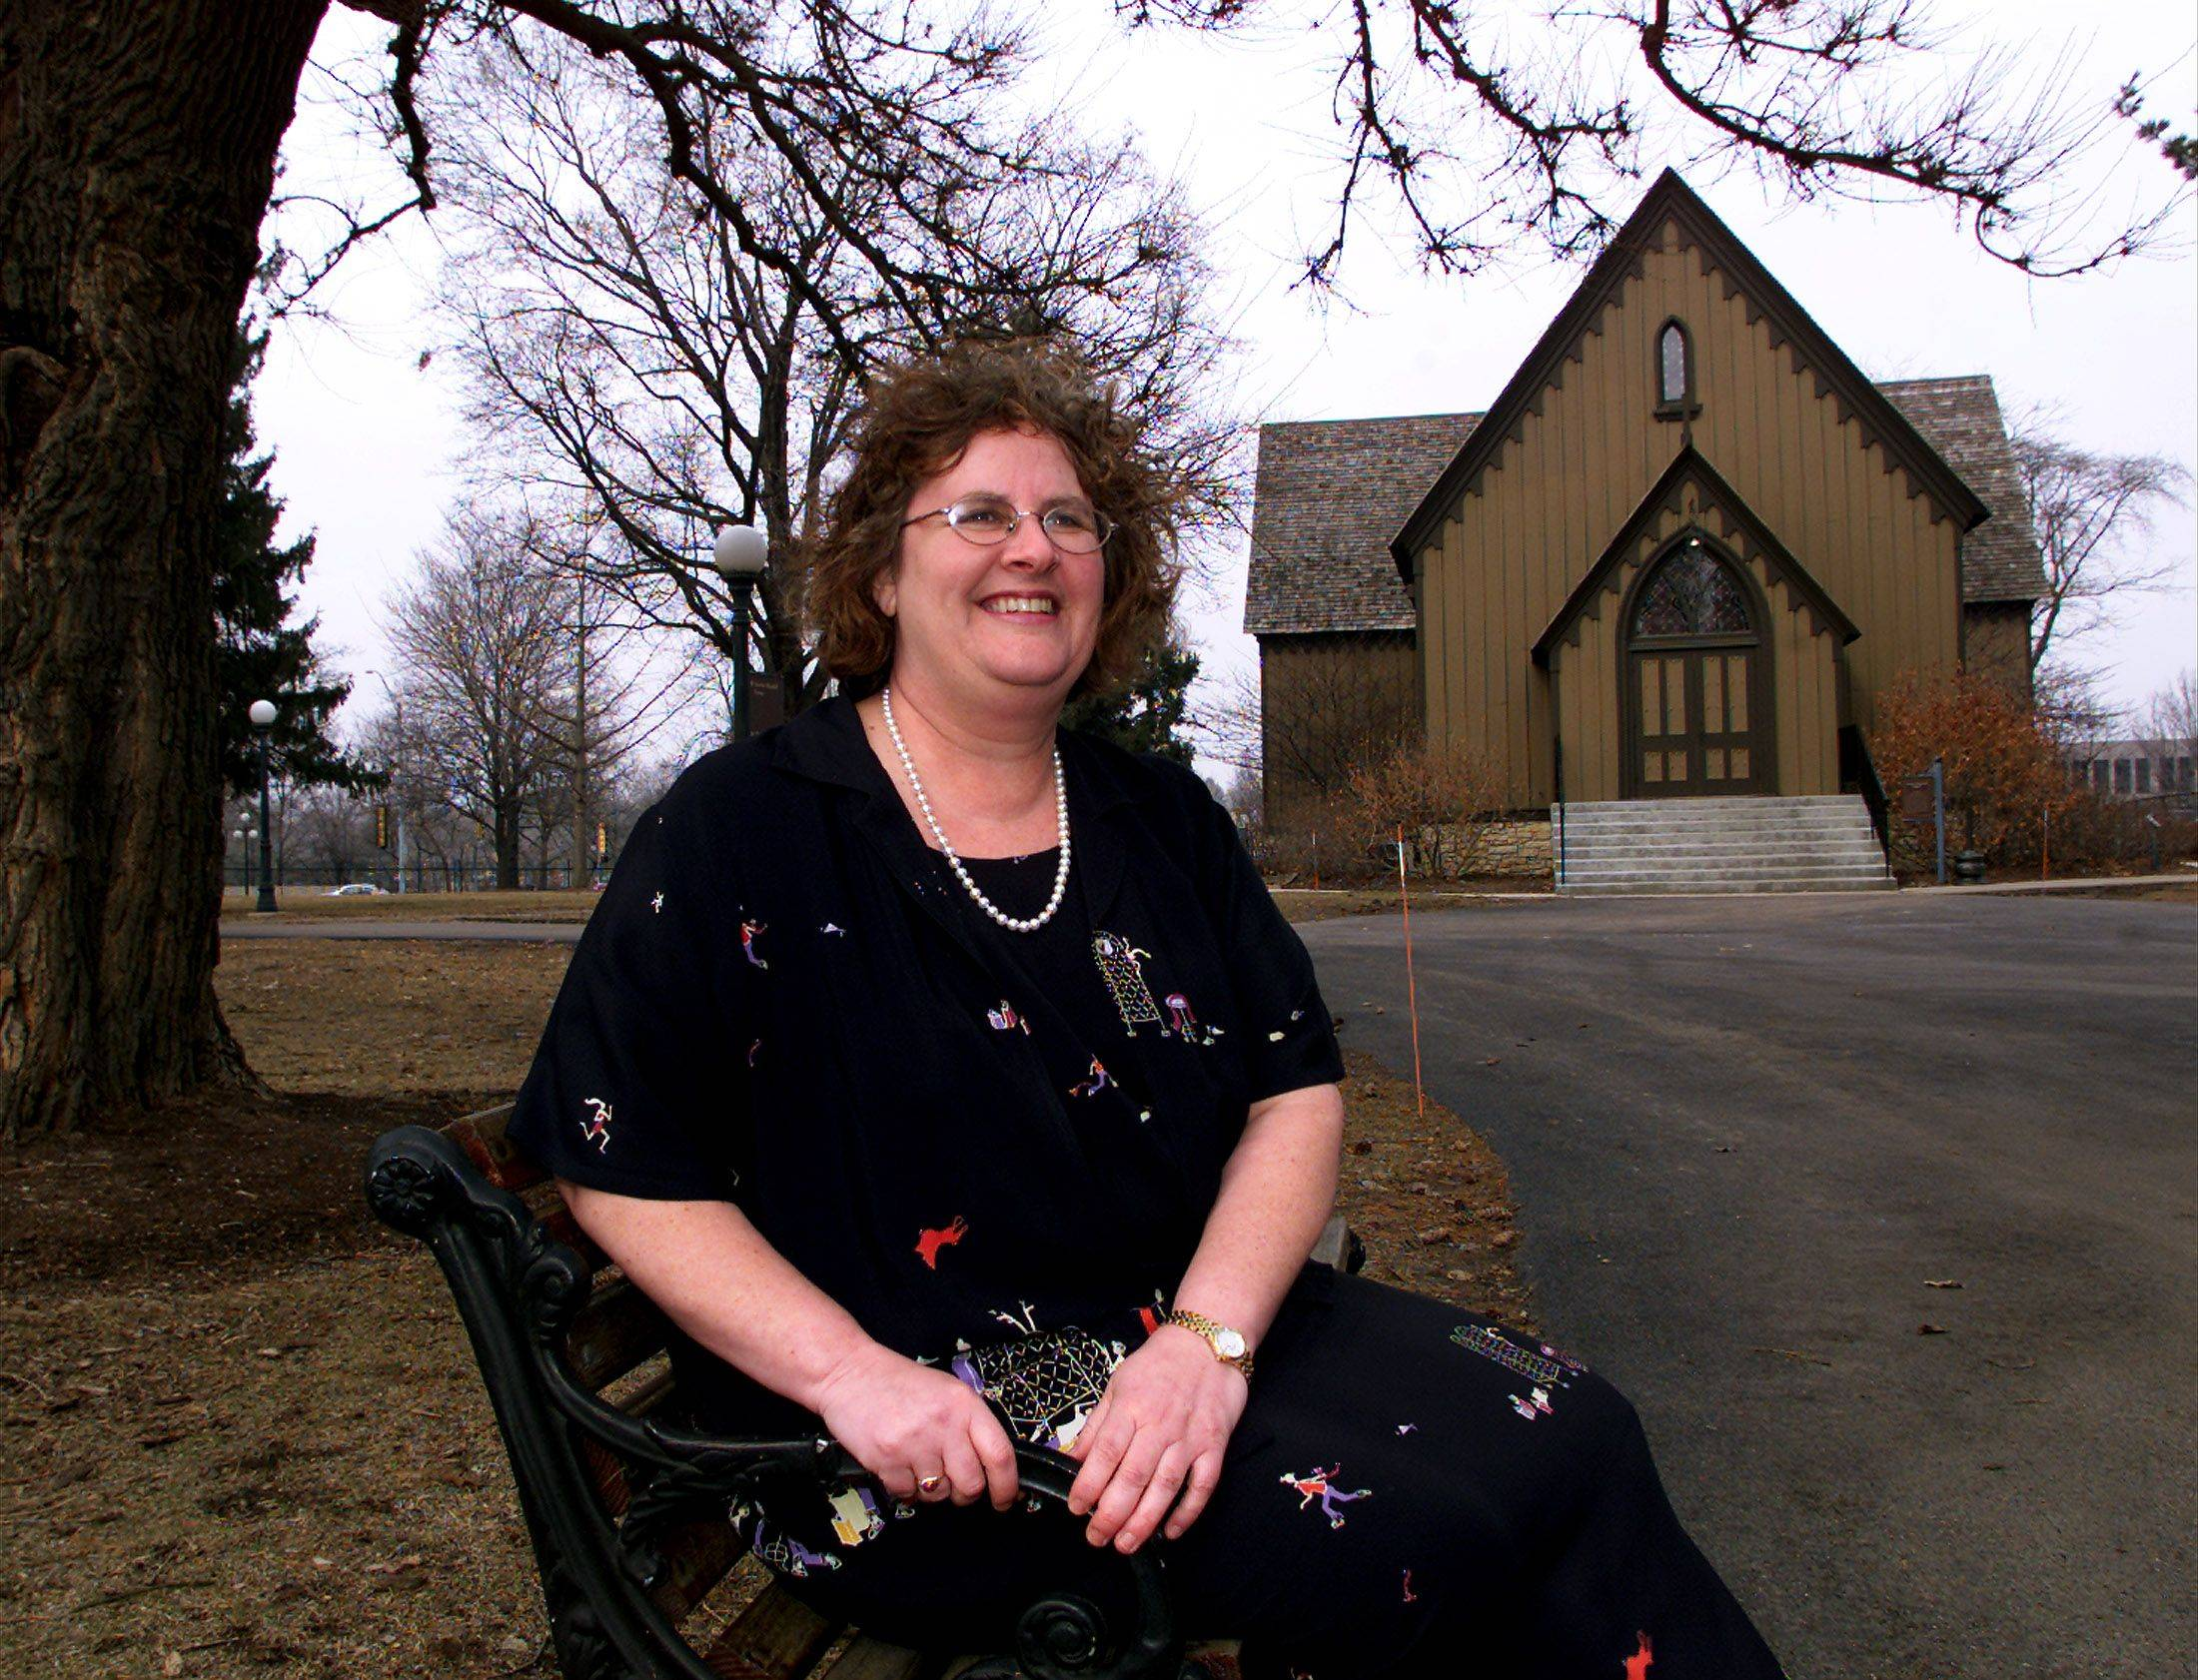 Peggy Frank, executive director of Naper Settlement, a 19th-century living-history museum in Naperville, is chairwoman of this week's Illinois Association of Museums conference being held in DuPage County.